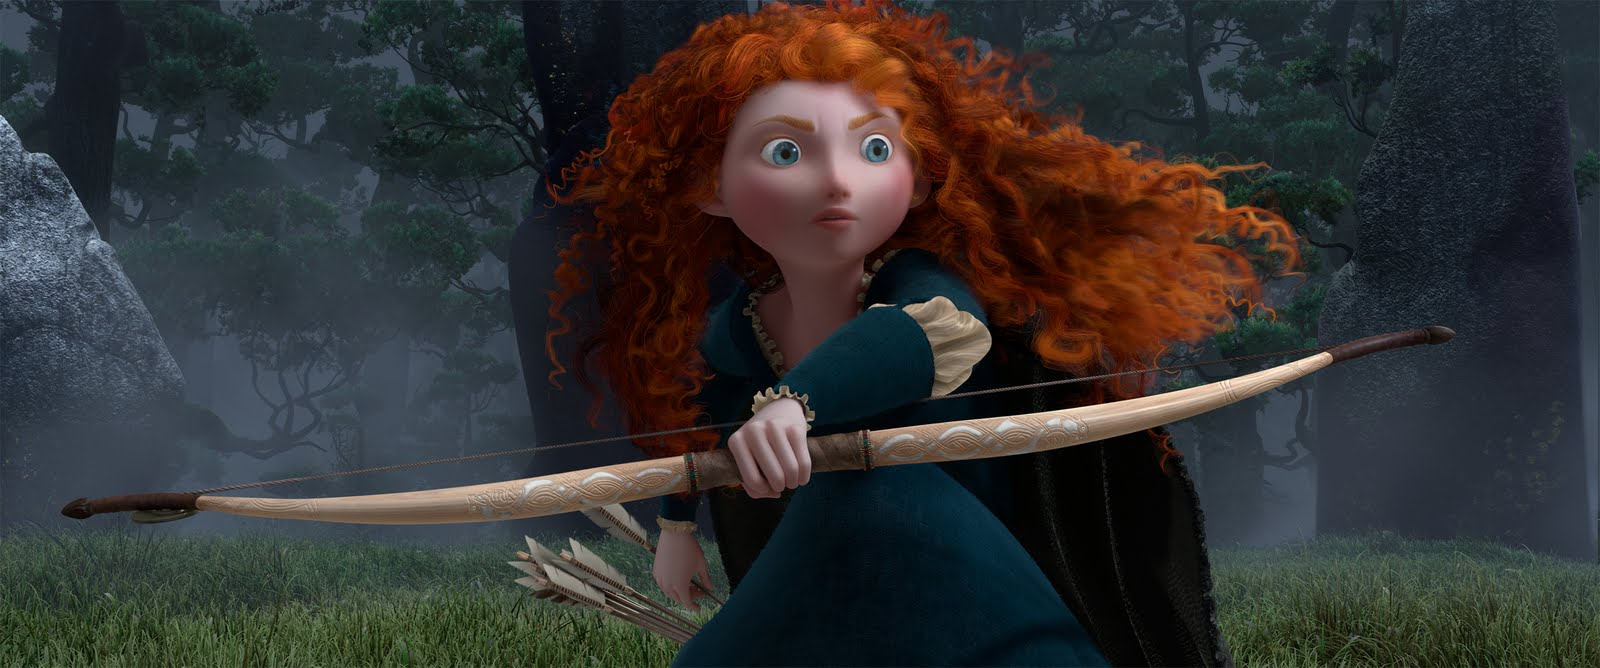 Merida_Brave_Bow_hi-res.jpg